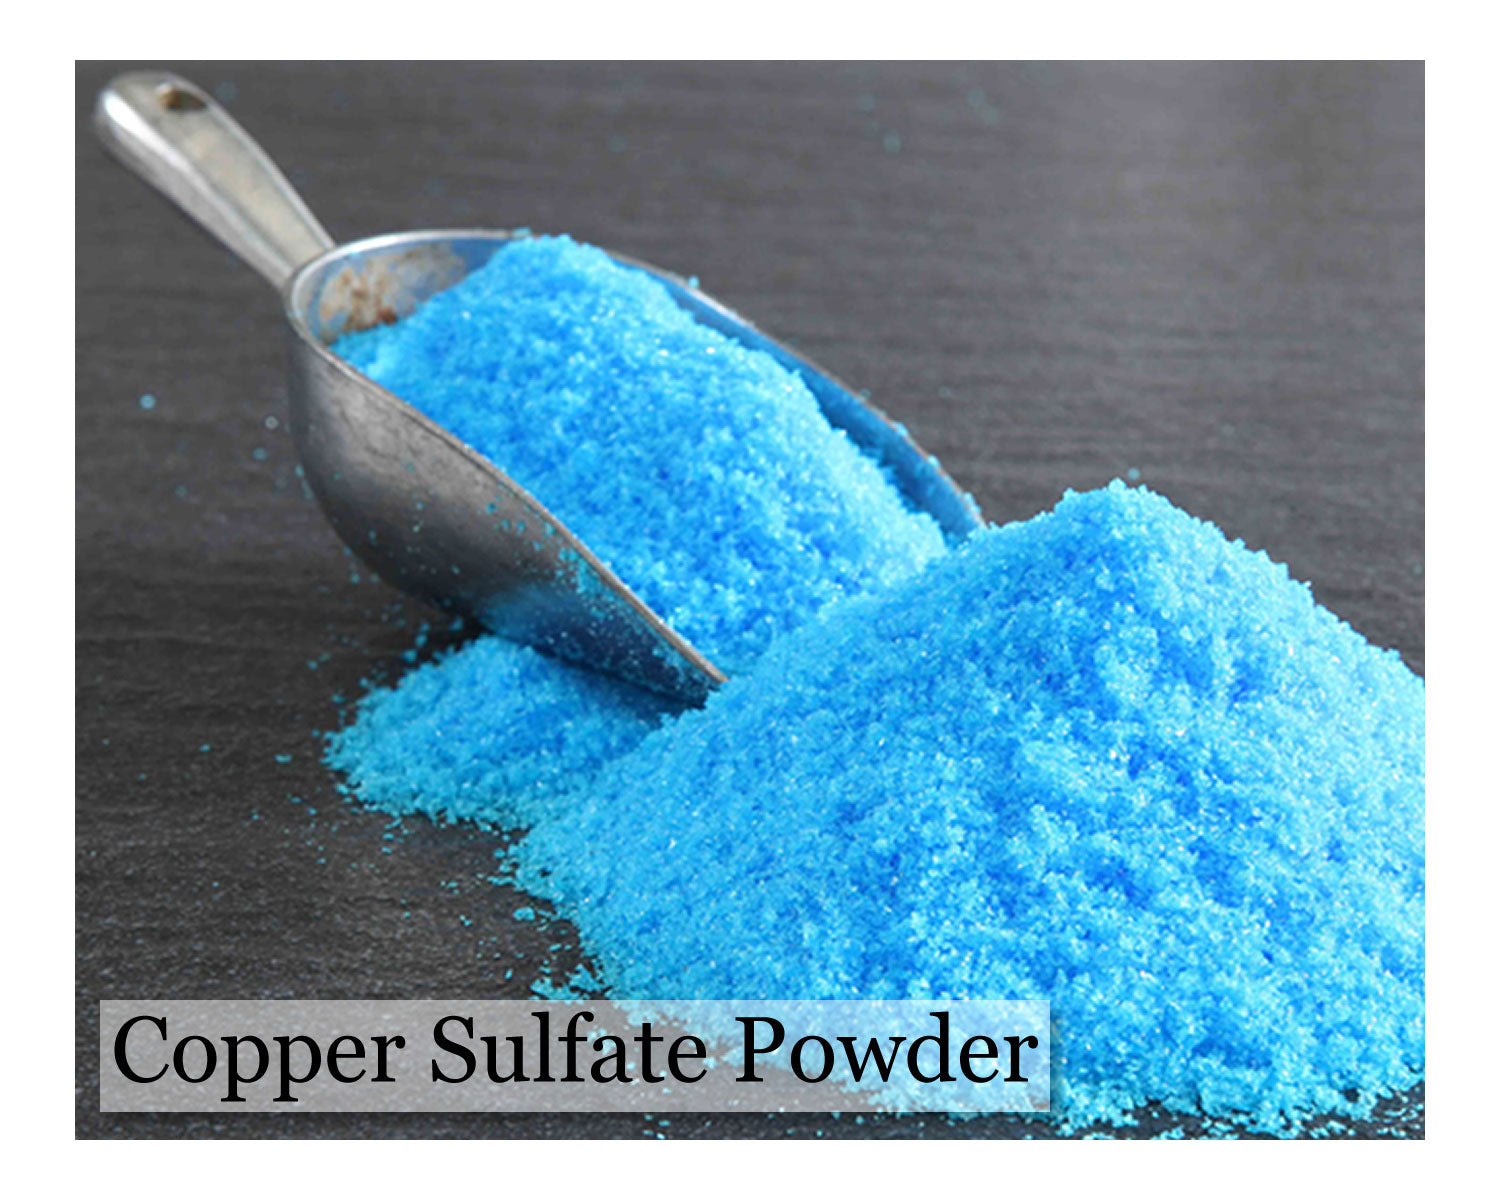 Copper Sulfate Powder - 4 oz